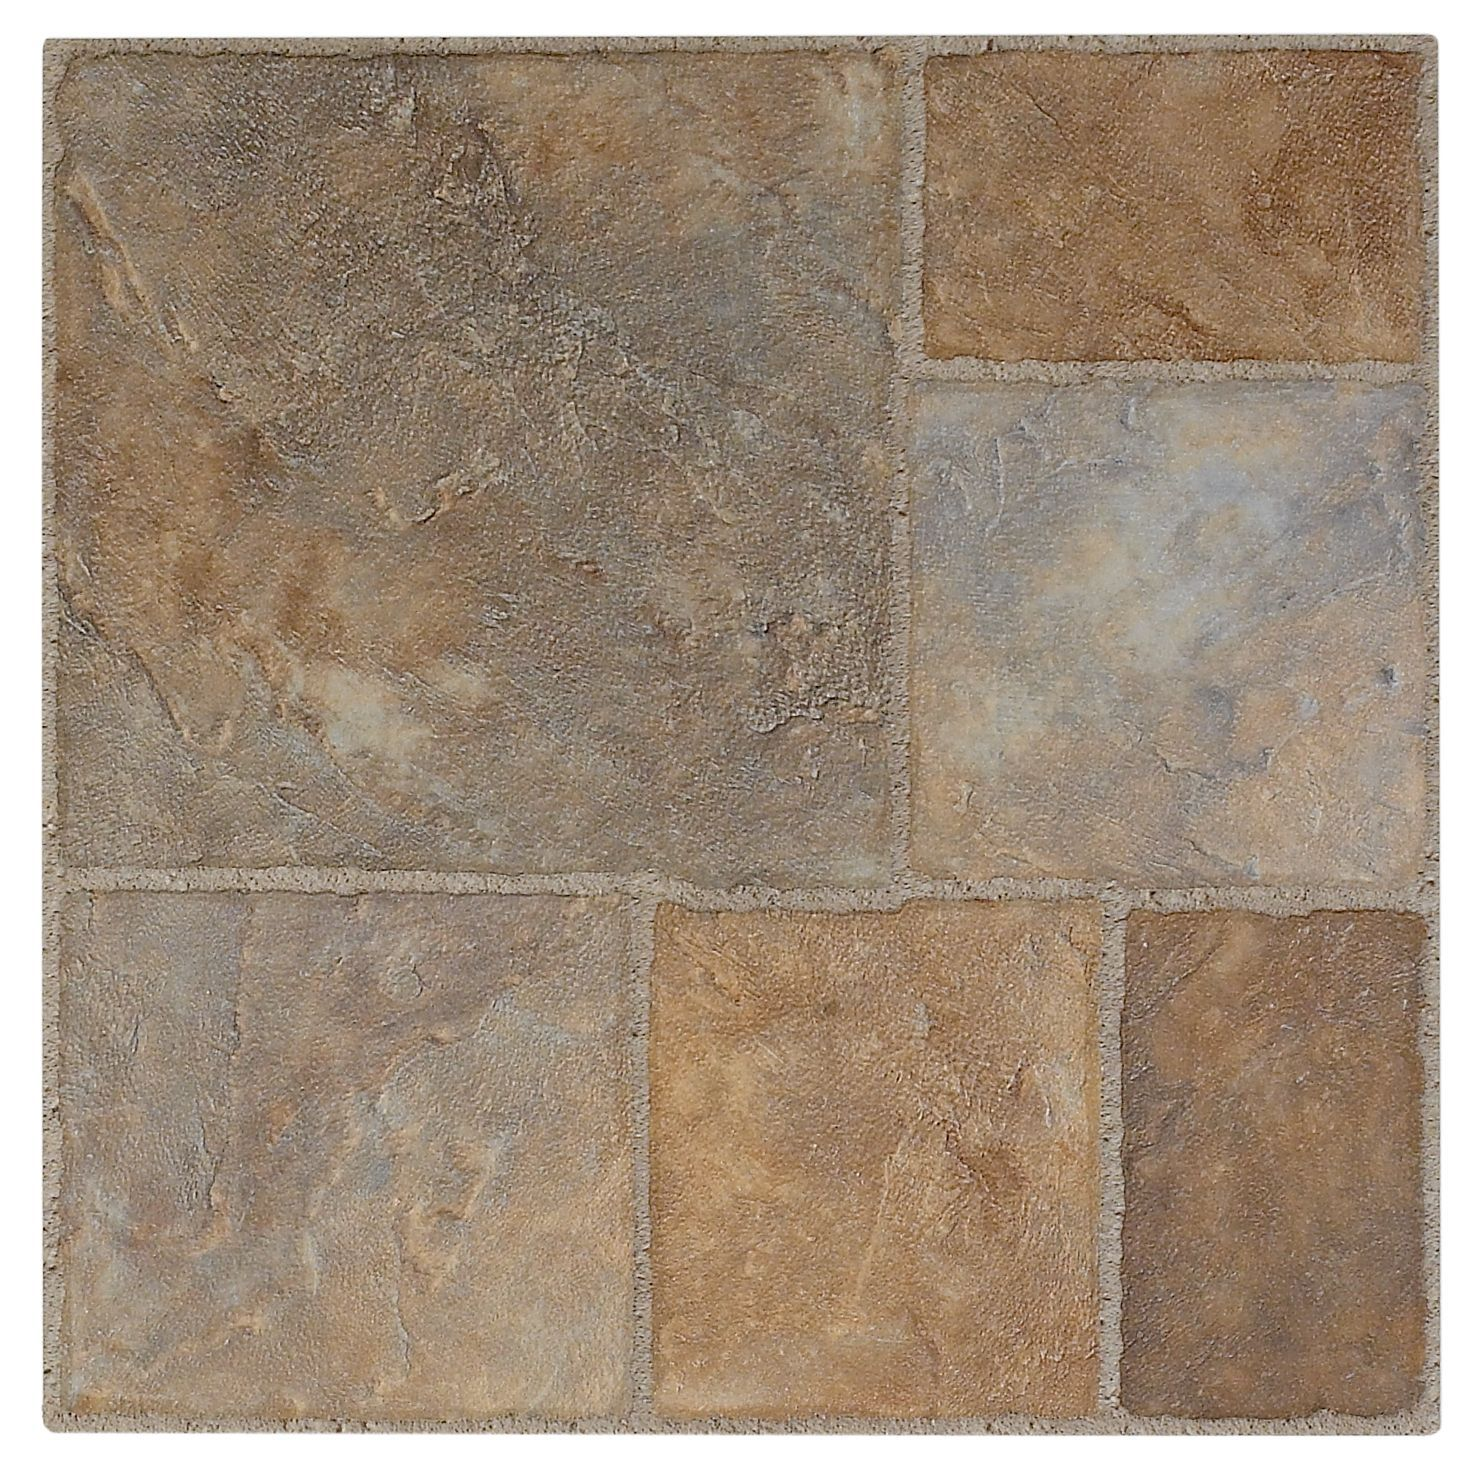 Colours sula beige stone effect self adhesive vinyl tile 0 for Stone effect vinyl flooring